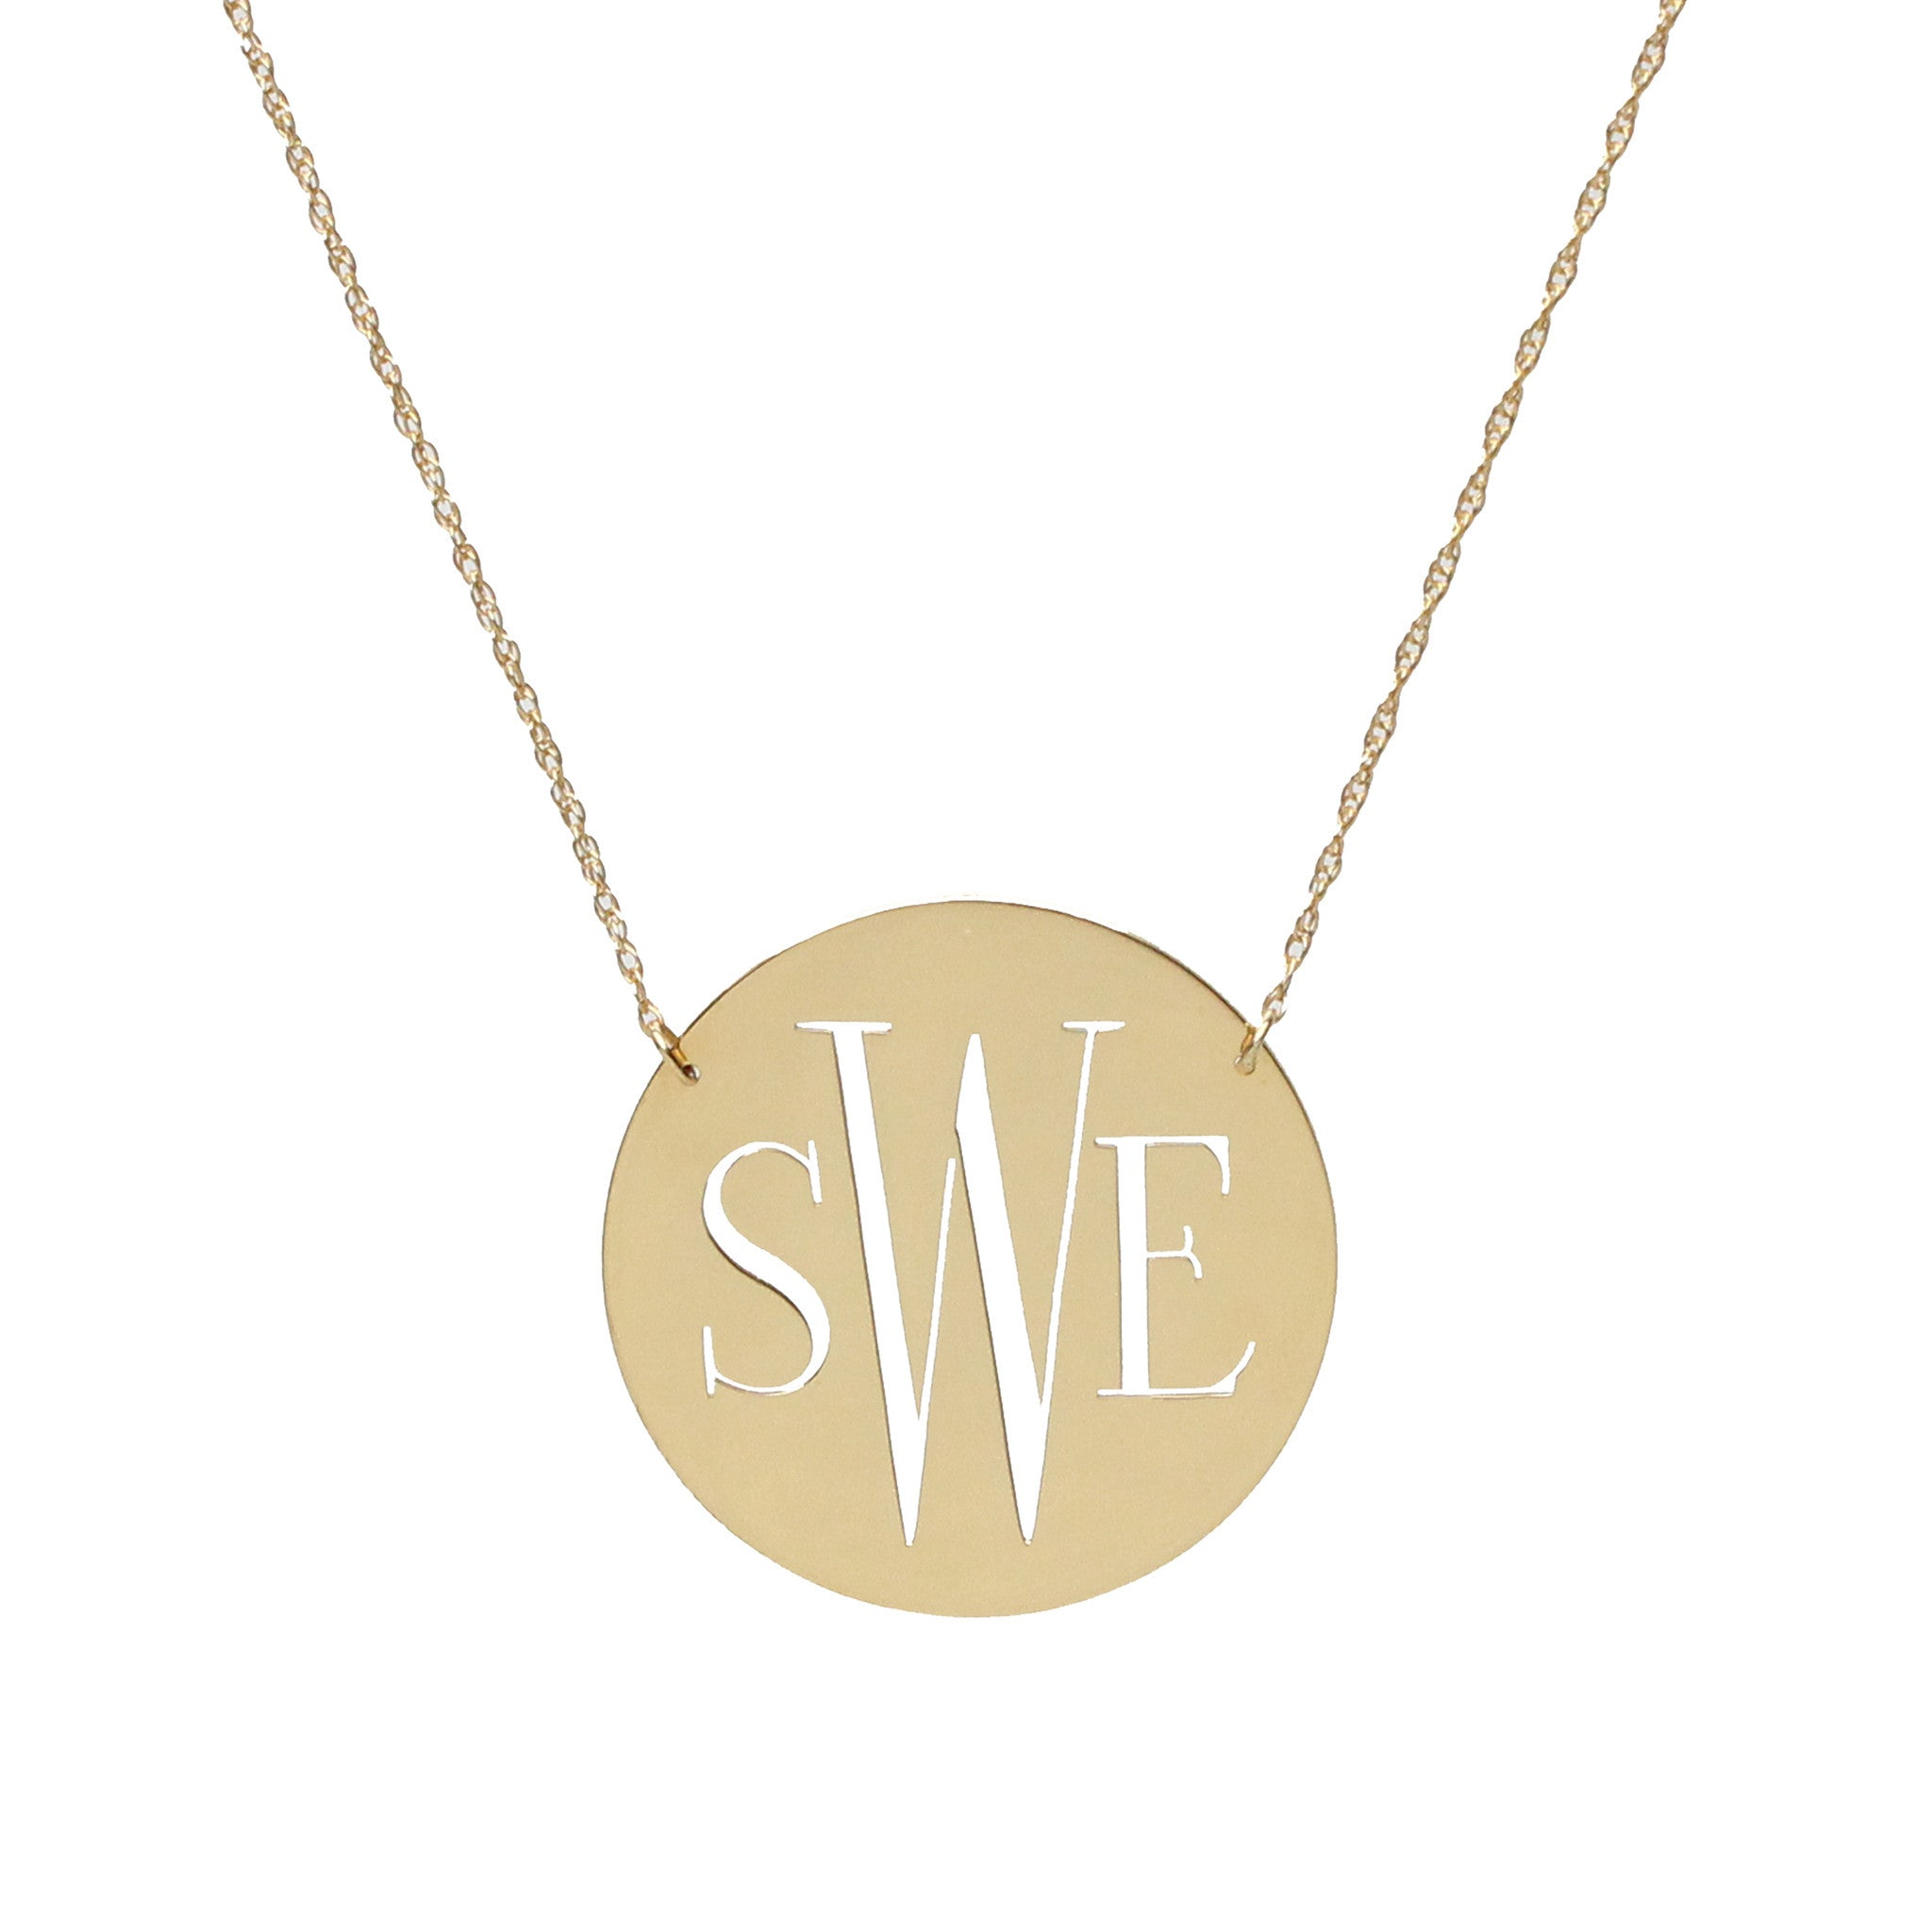 I found this at #moonandlola - Disc Necklace